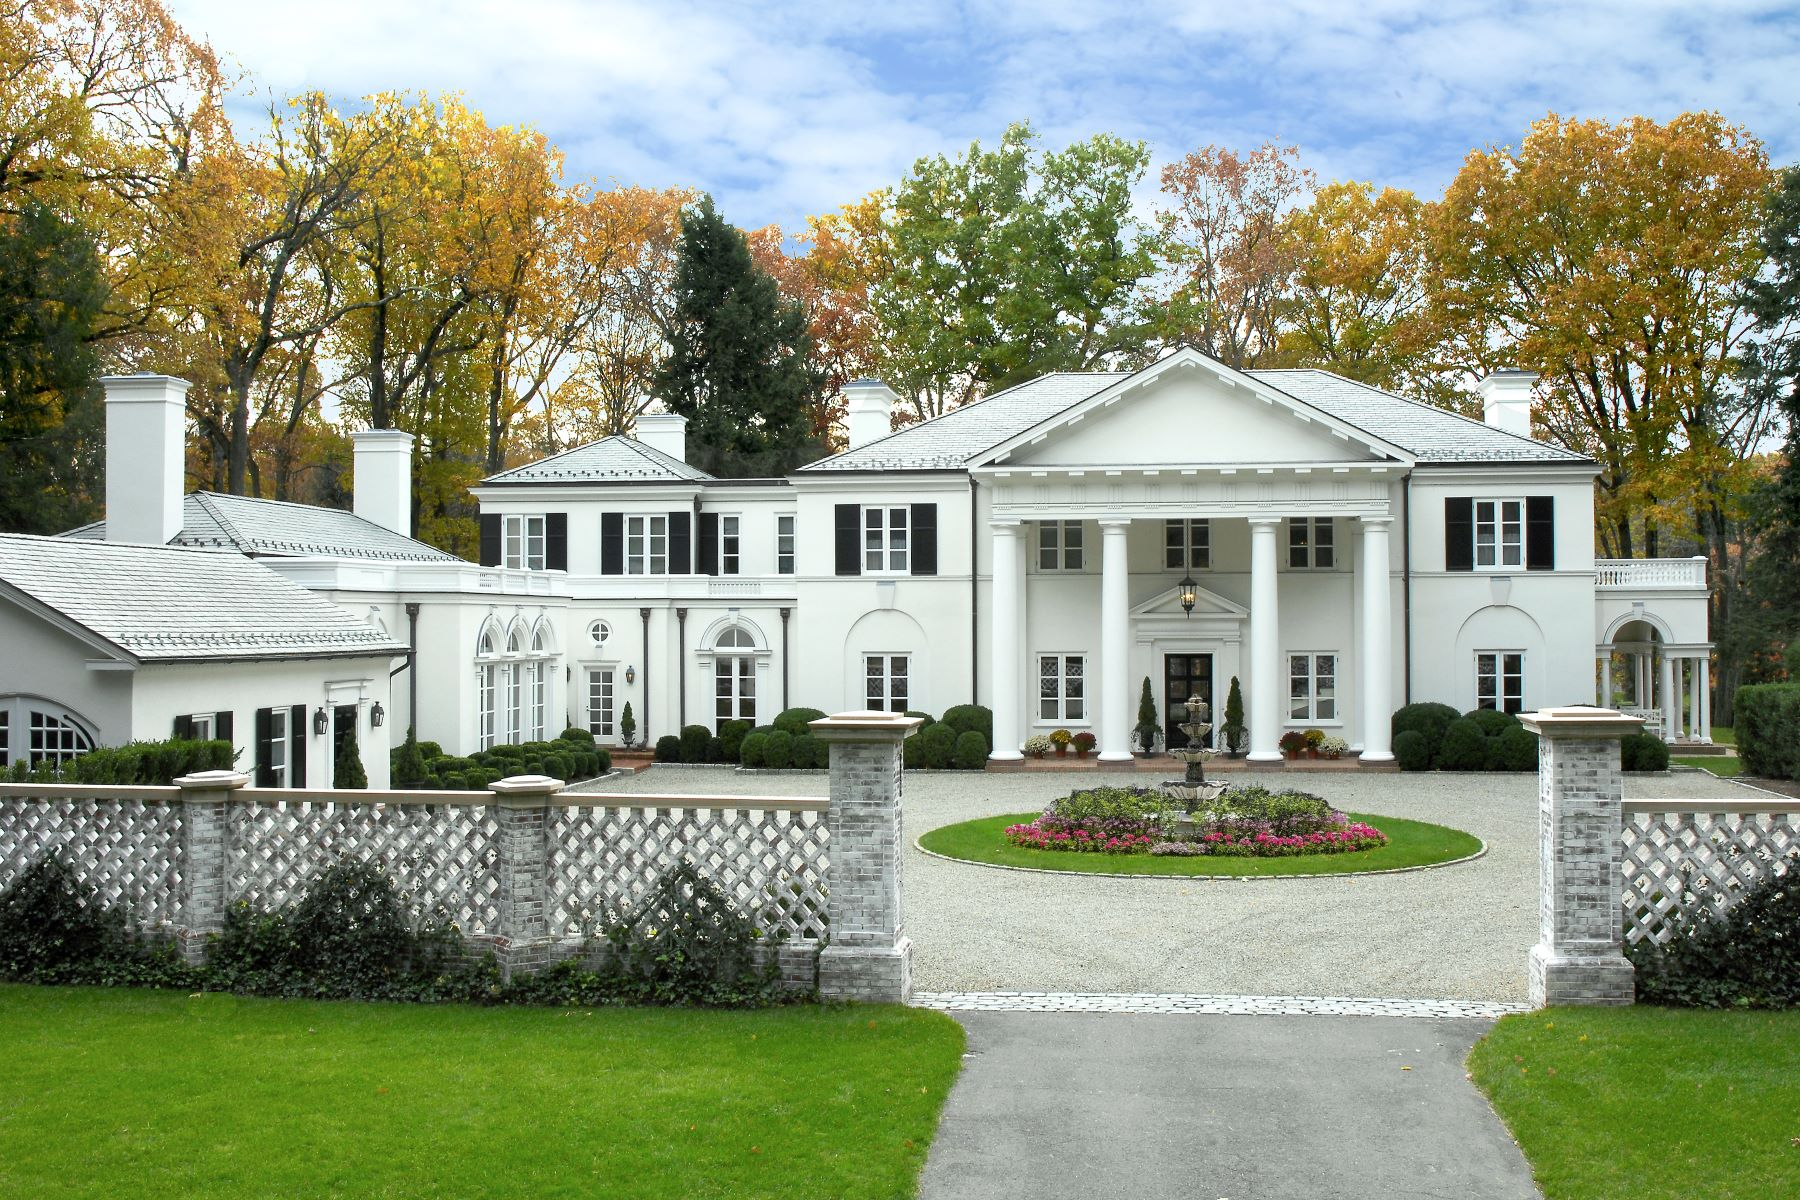 Casa Unifamiliar por un Venta en 99 Huckleberry Hill Road 99 Huckleberry Hill Road New Canaan, Connecticut 06840 Estados Unidos